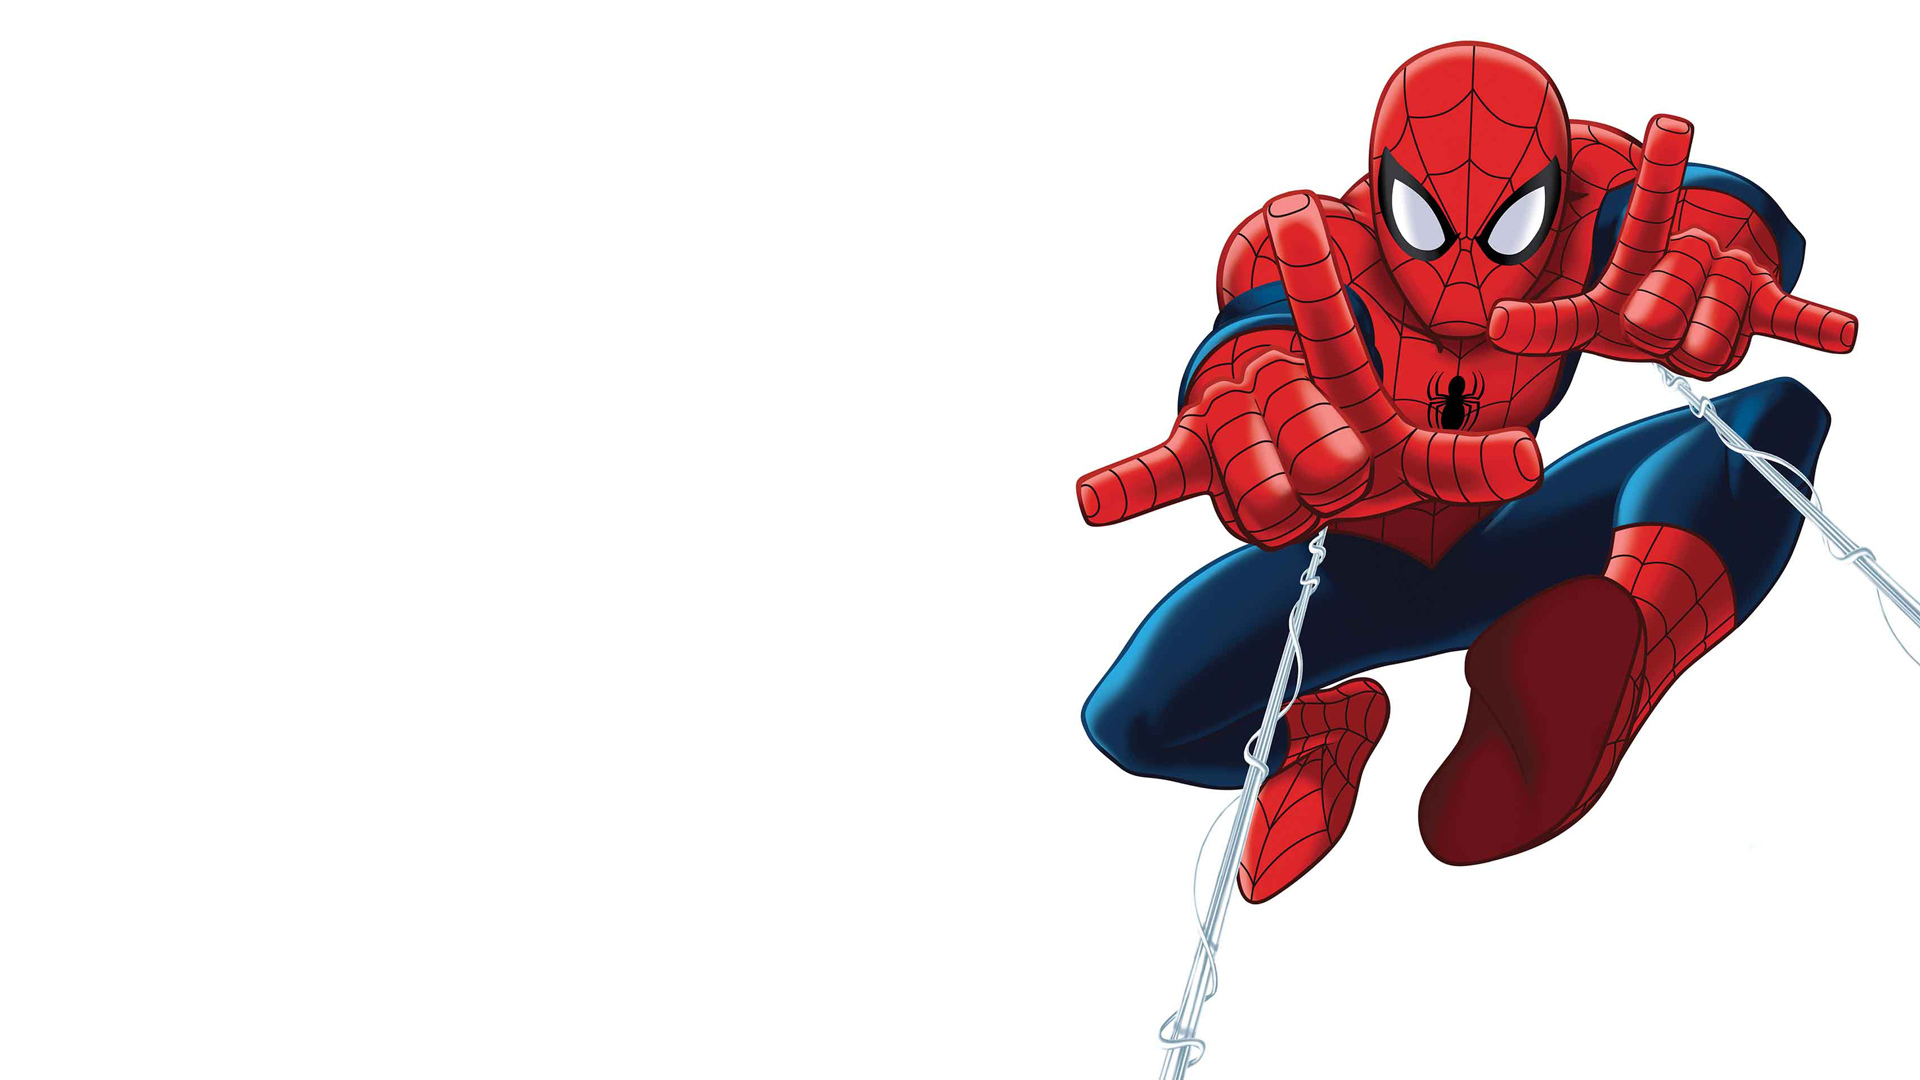 Animation Wallpaper Hd Free Download Fondos De Pantalla De Spiderman Wallpapers